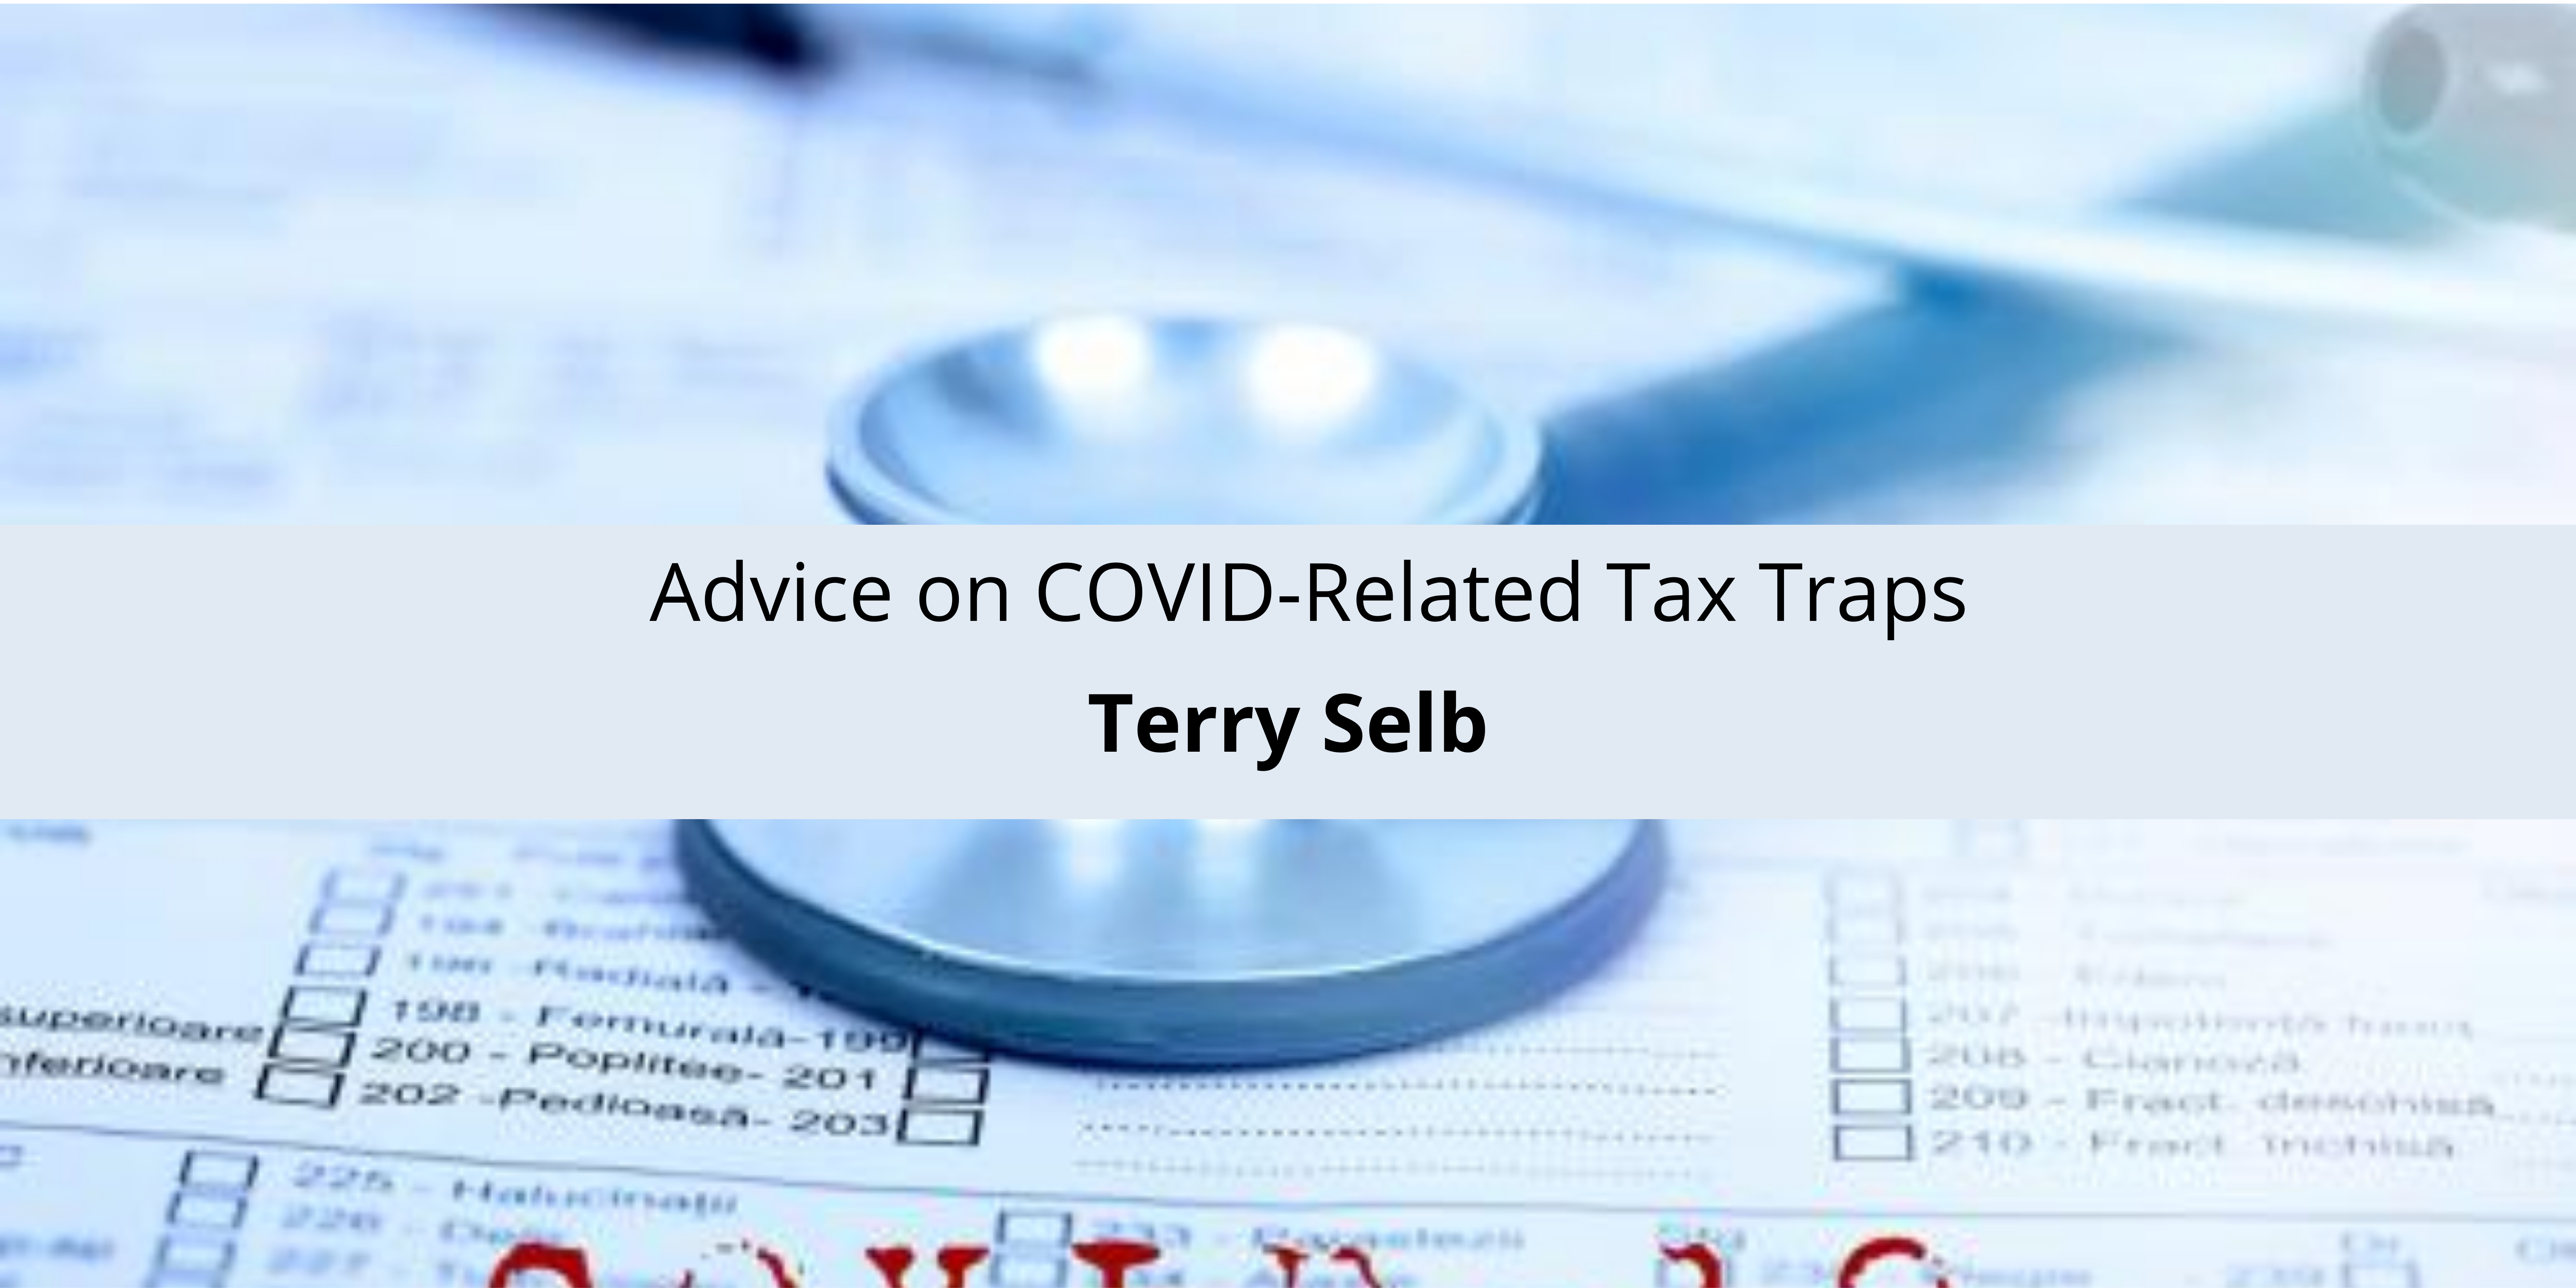 Terry Selb's Advice on COVID-Related Tax Traps